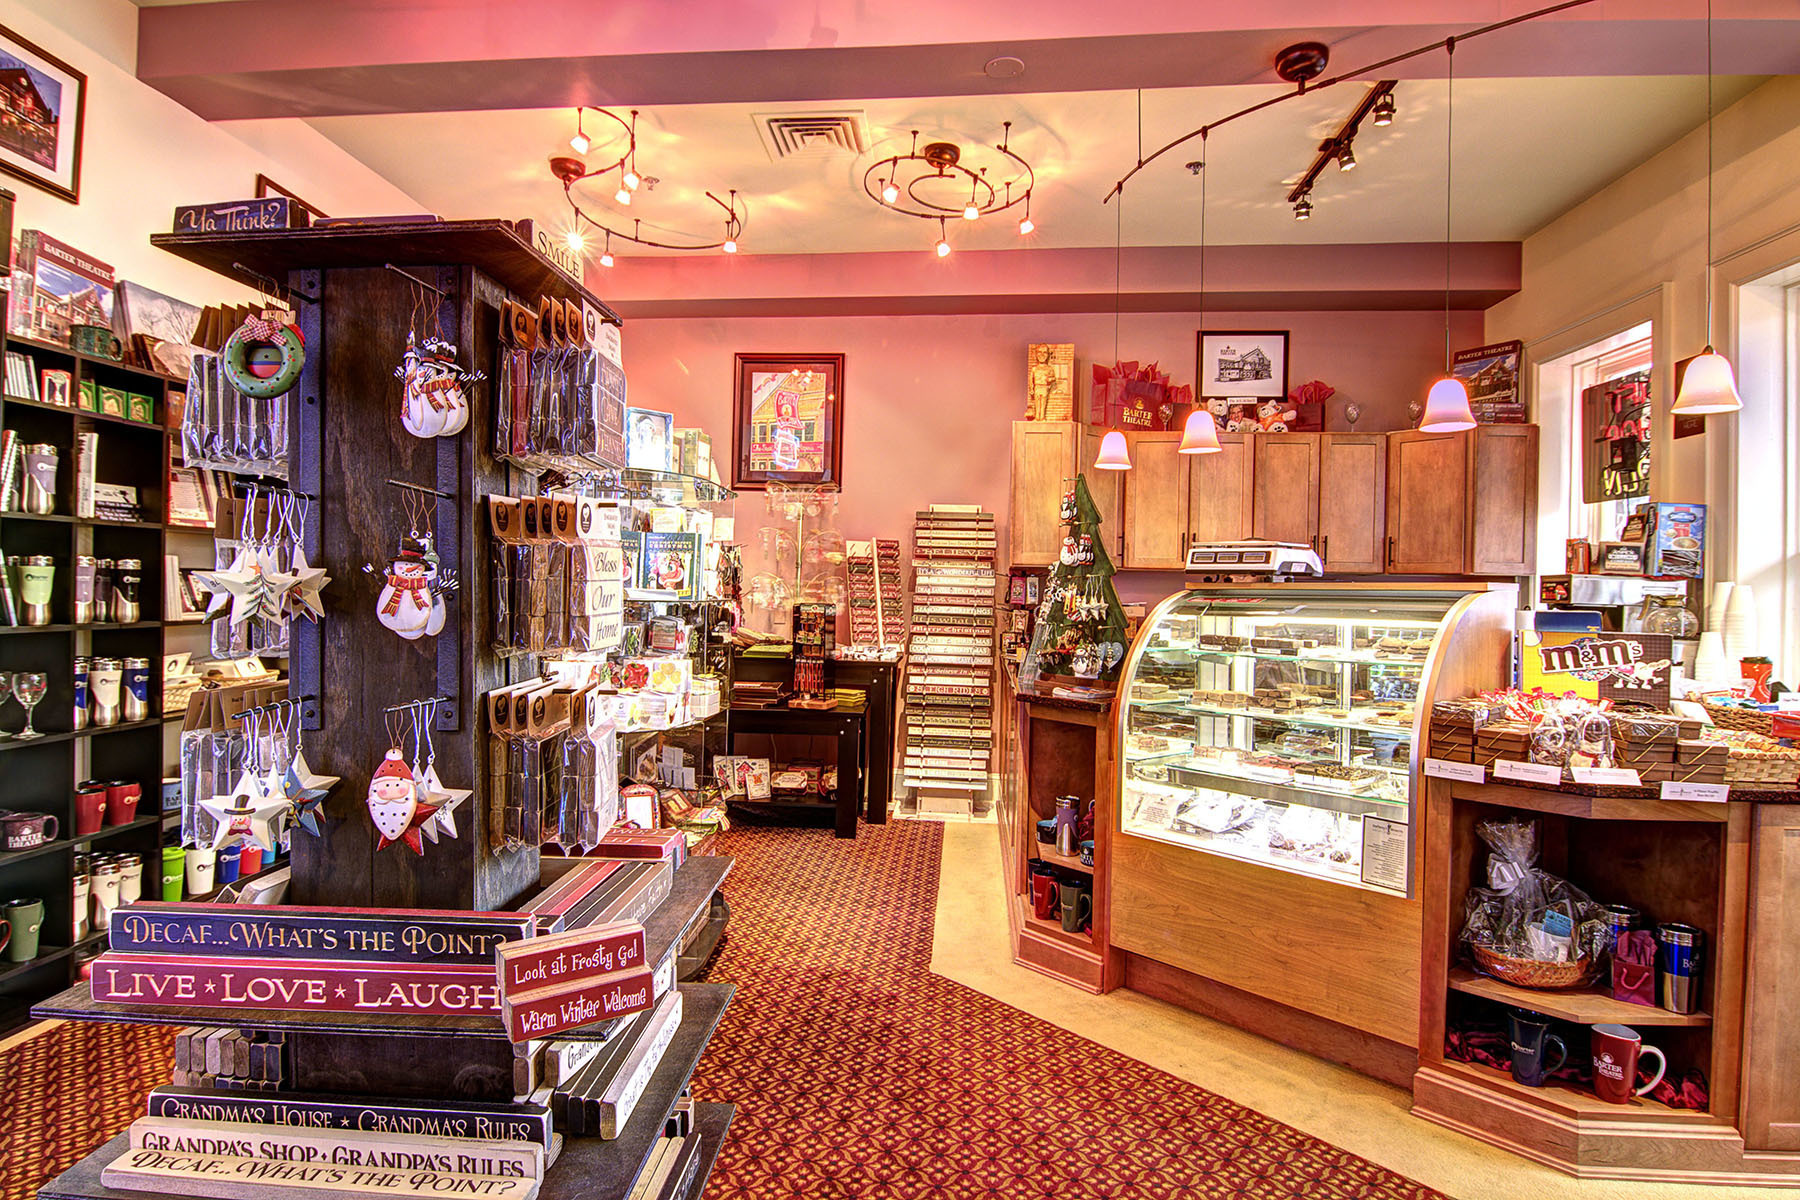 The gift shop in the Barter Theatre is especially festive at Christmas.